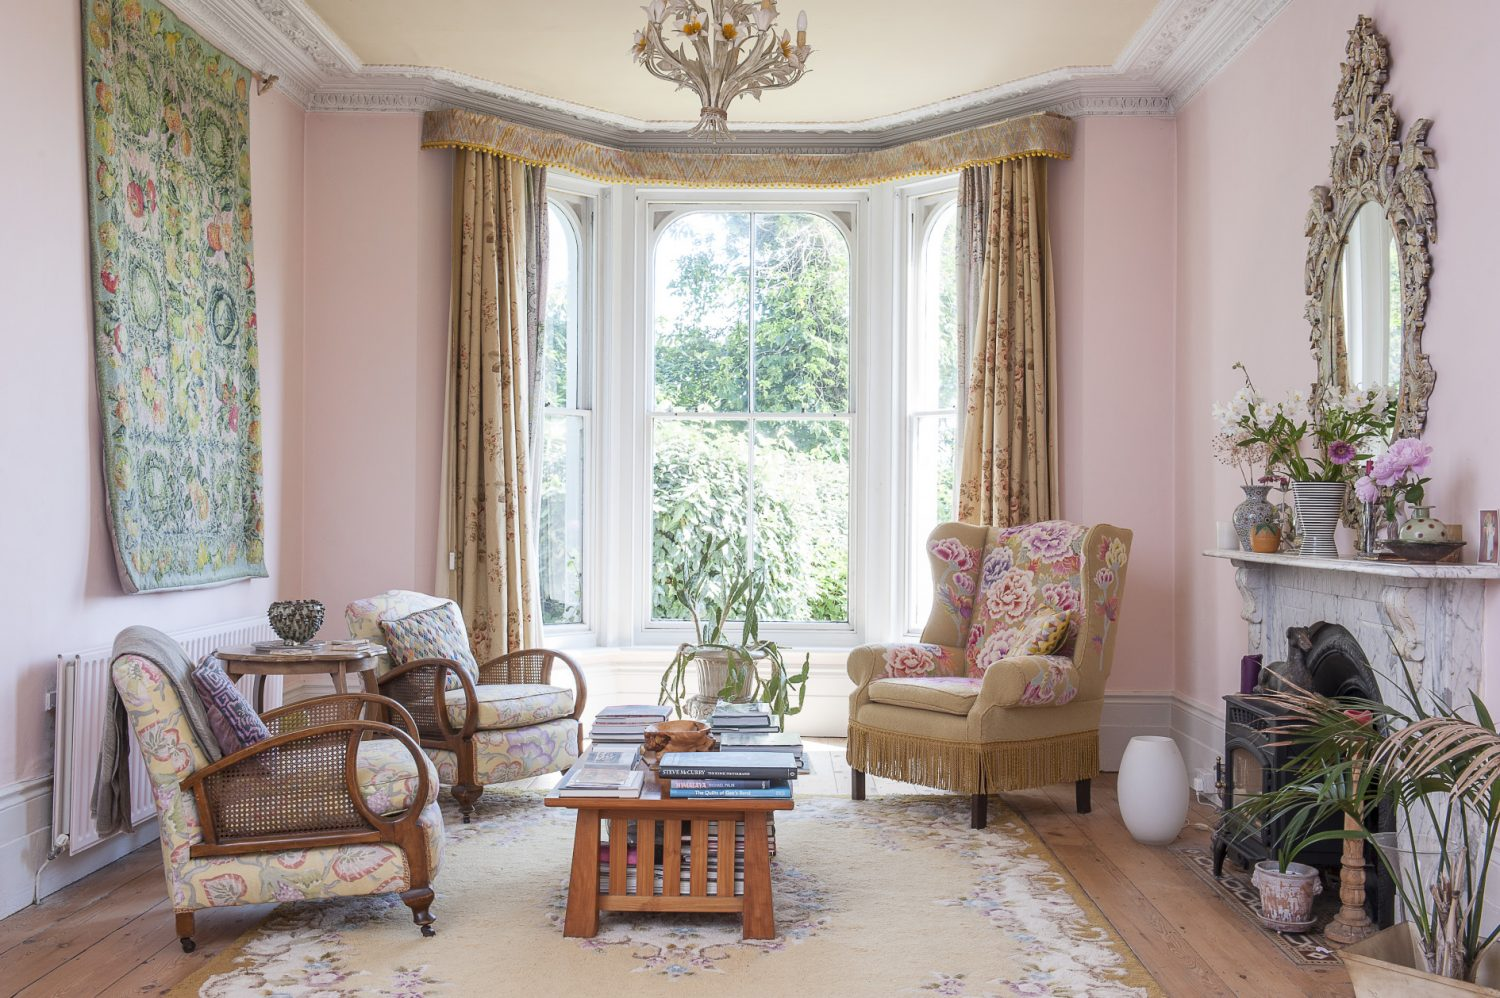 Two of the four easy chairs in the sitting room have been upholstered in needlepoint by Kaffe, continuing the floral theme. These blend perfectly with the honey-coloured floorboards which were here when Kaffe and Brandon moved in